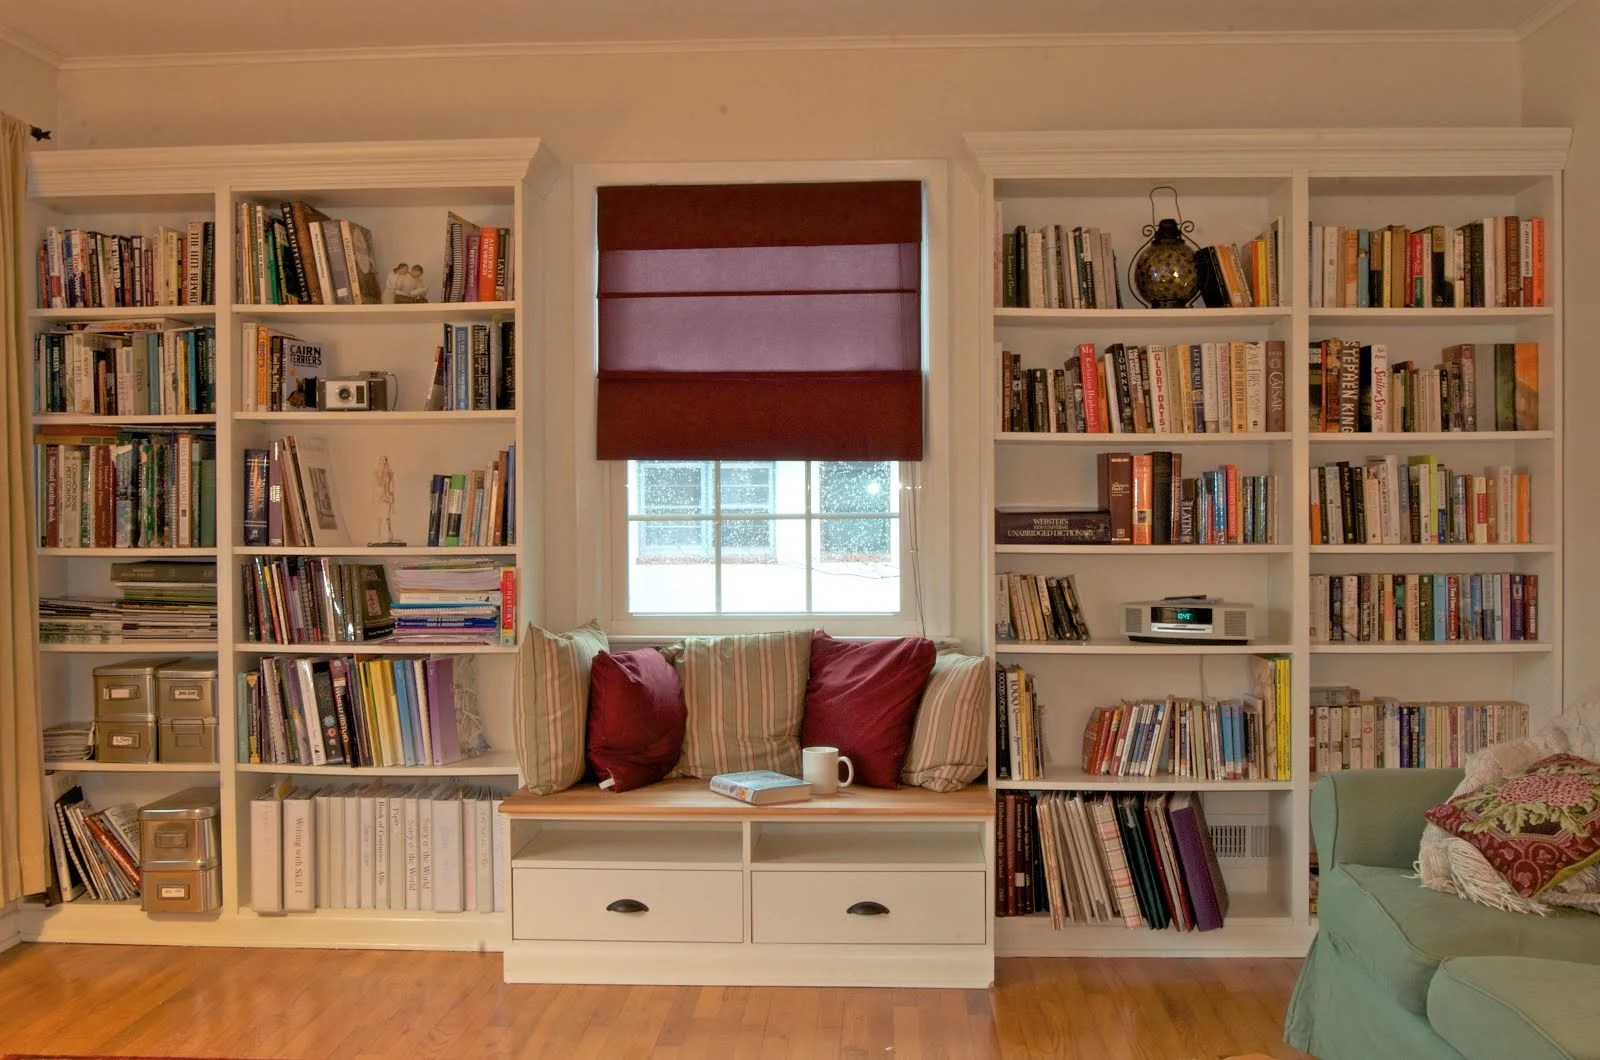 Wall Bookshelves Ideas Built In Bookshelves With Window Seat For Under 350